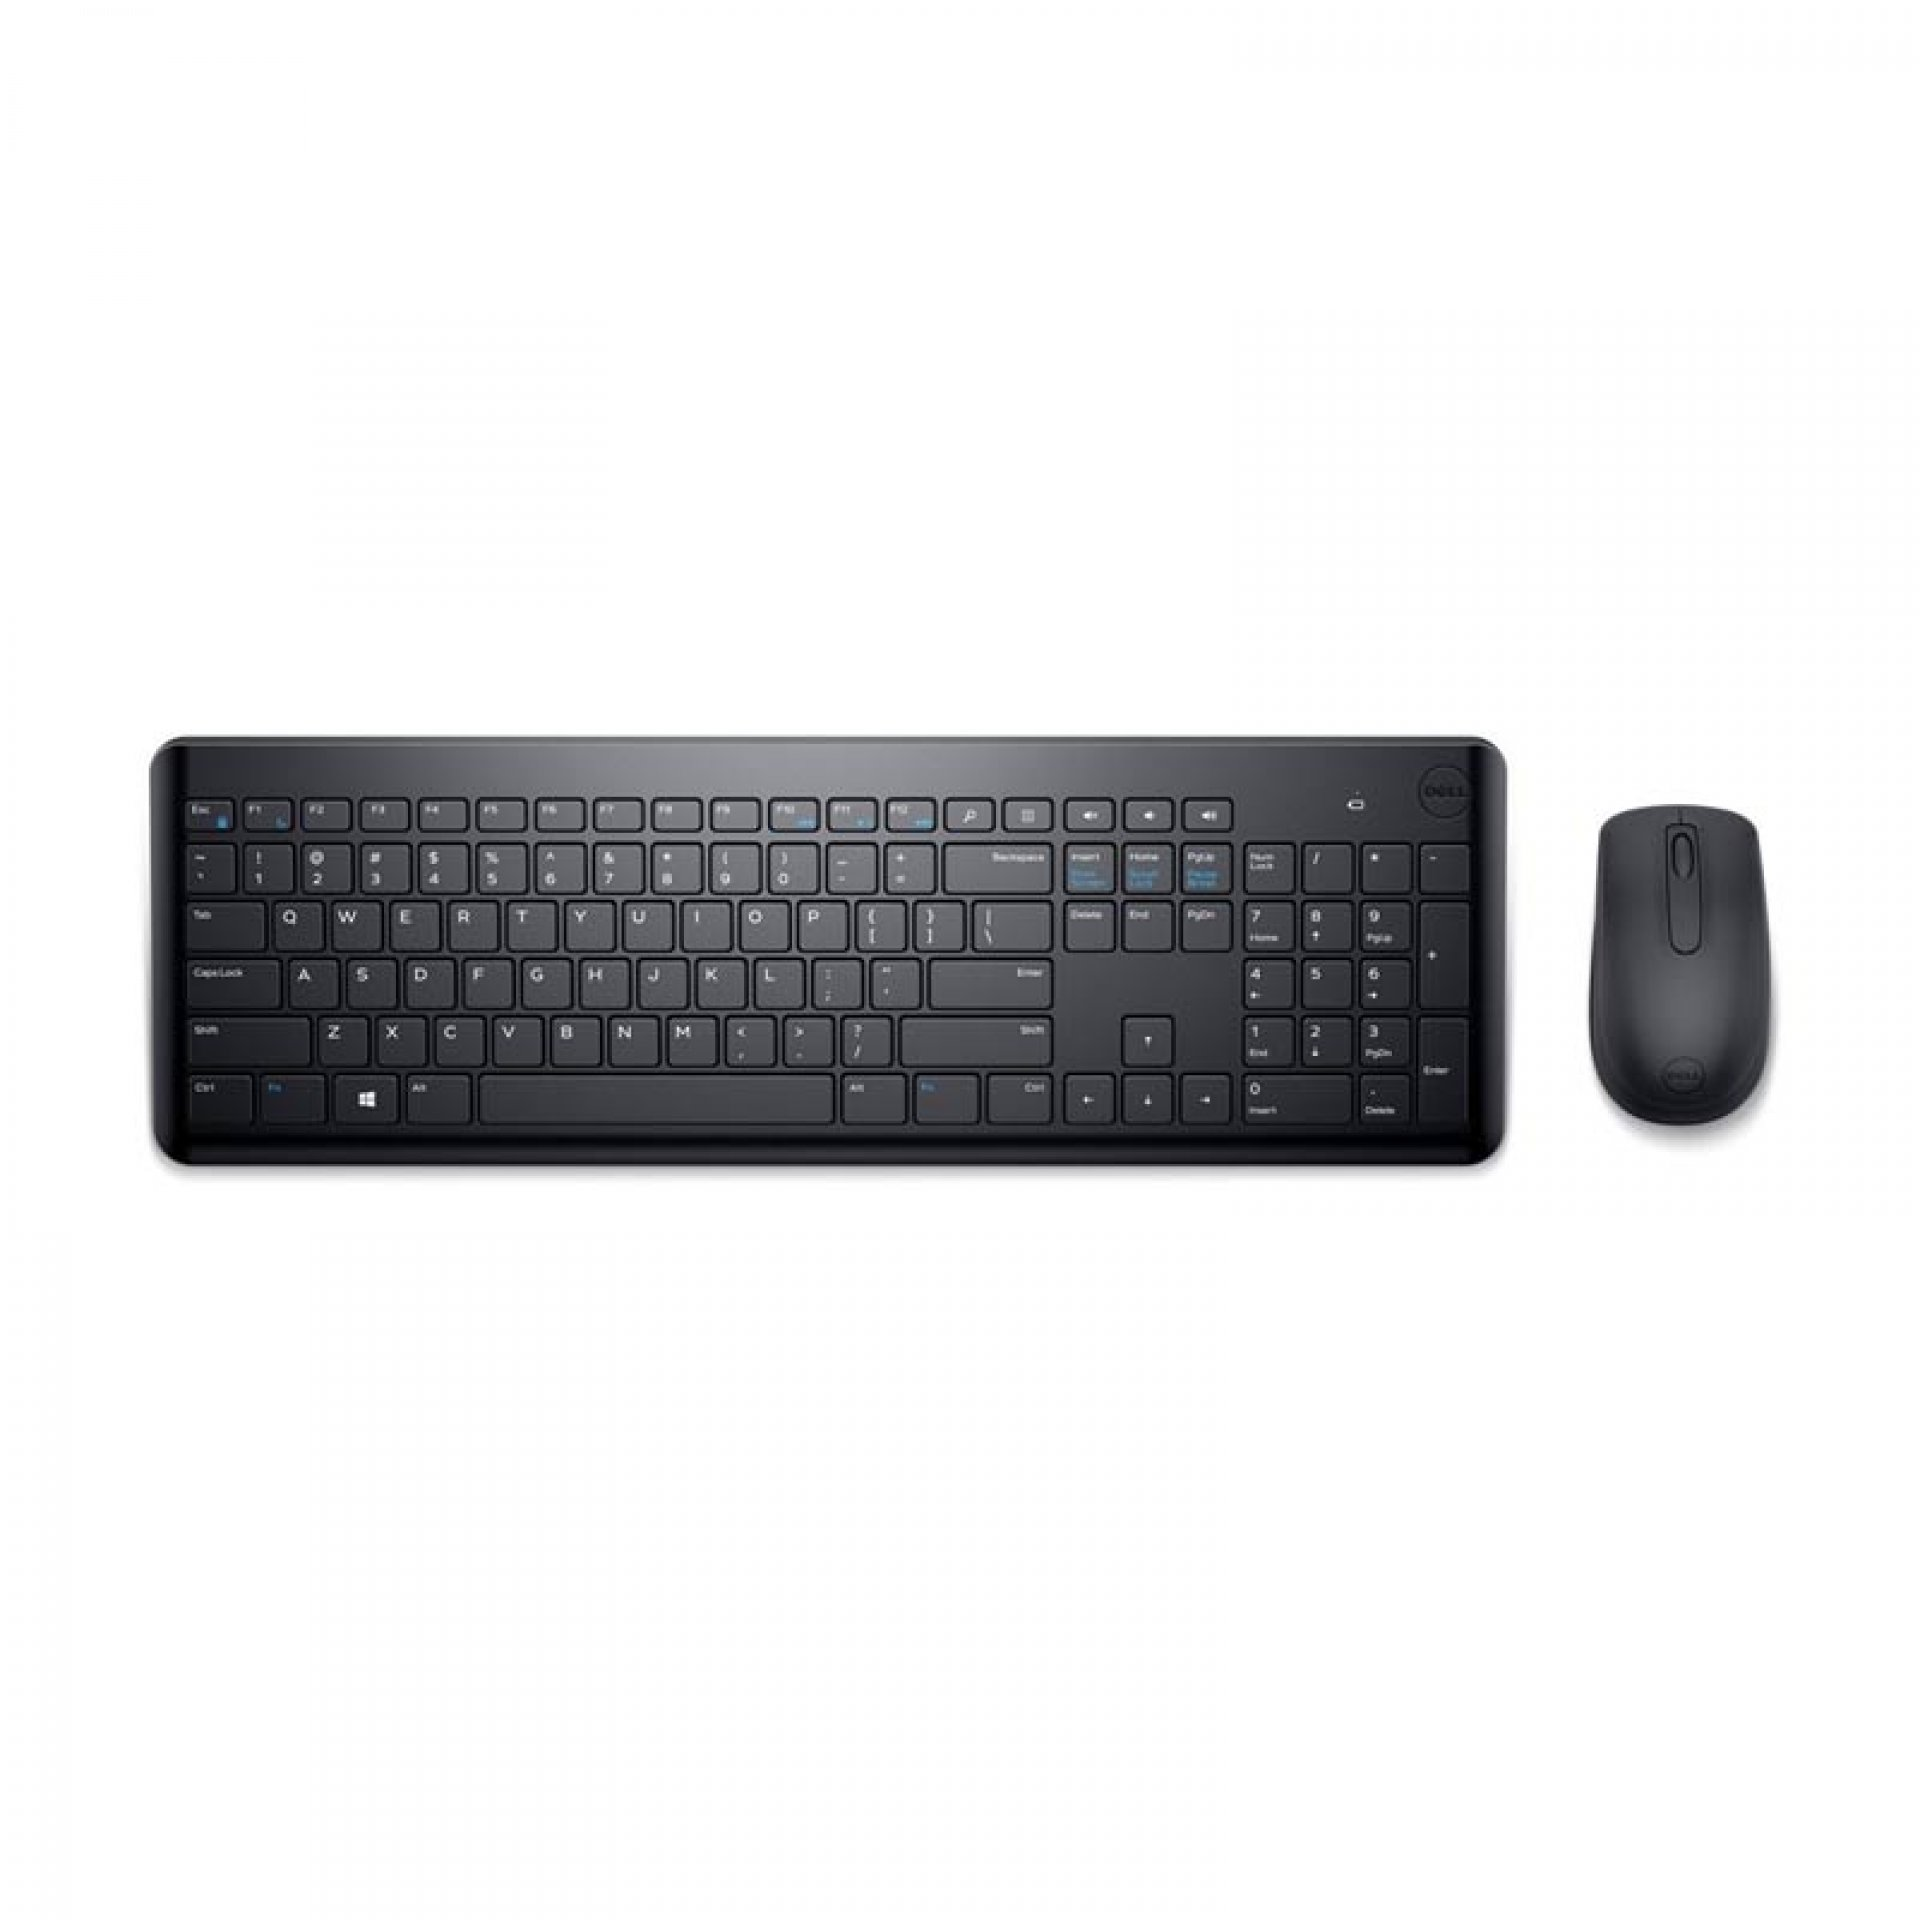 Dell Dimension 1100 Wireless Keyboard Mouse Driver (2019)